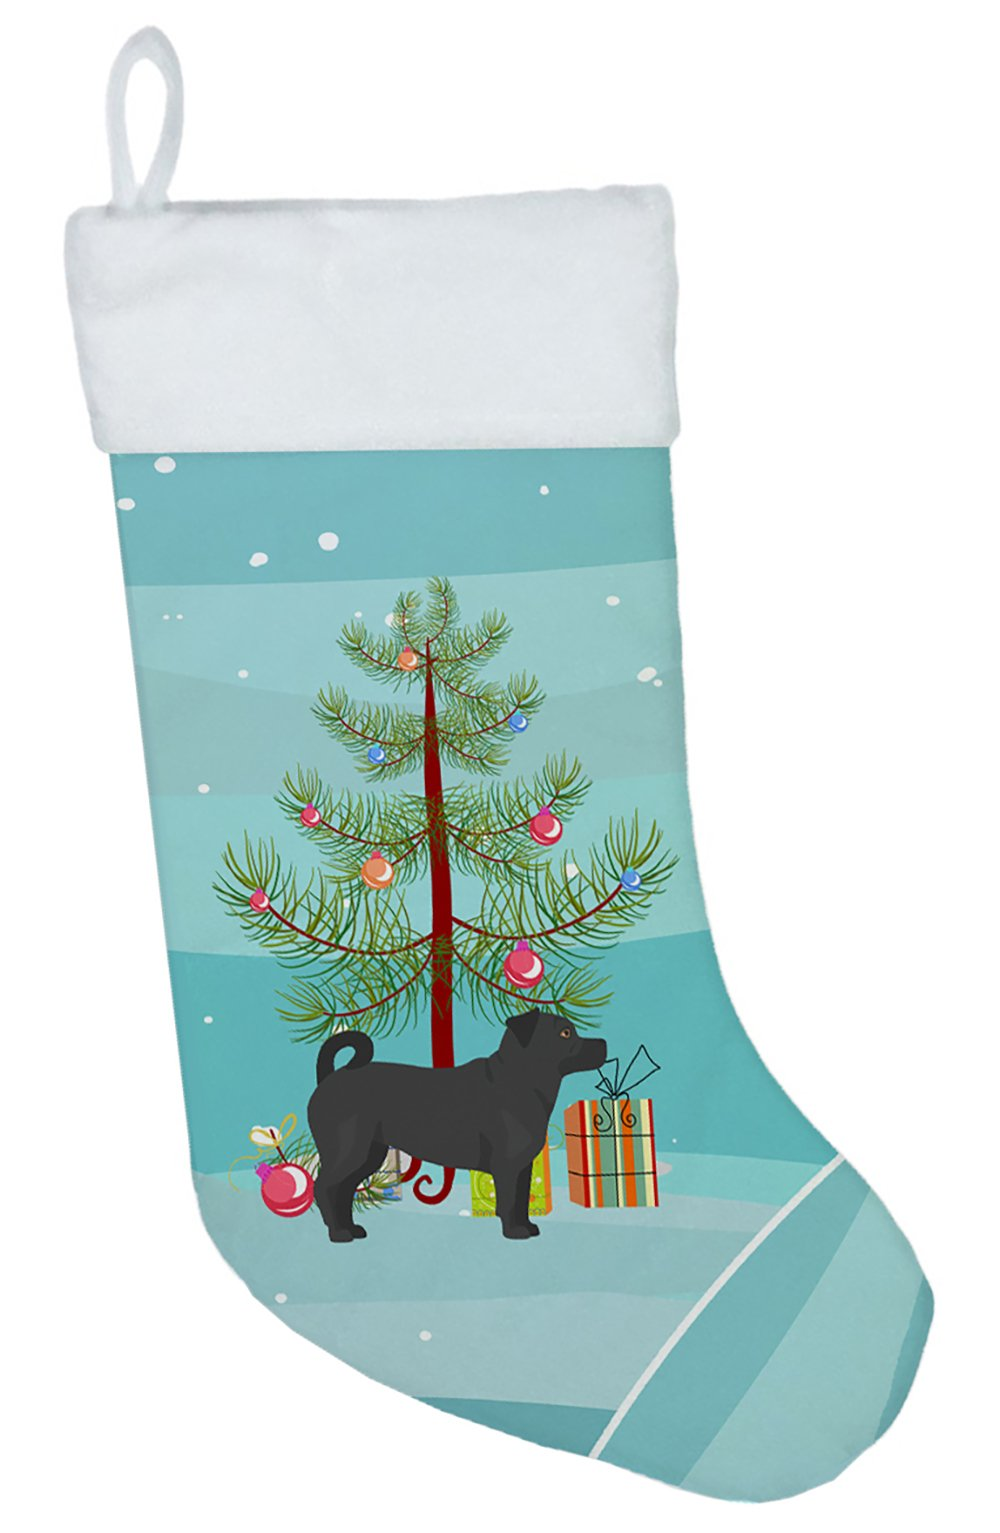 Balck Jug Christmas Tree Christmas Stocking CK3844CS by Caroline's Treasures